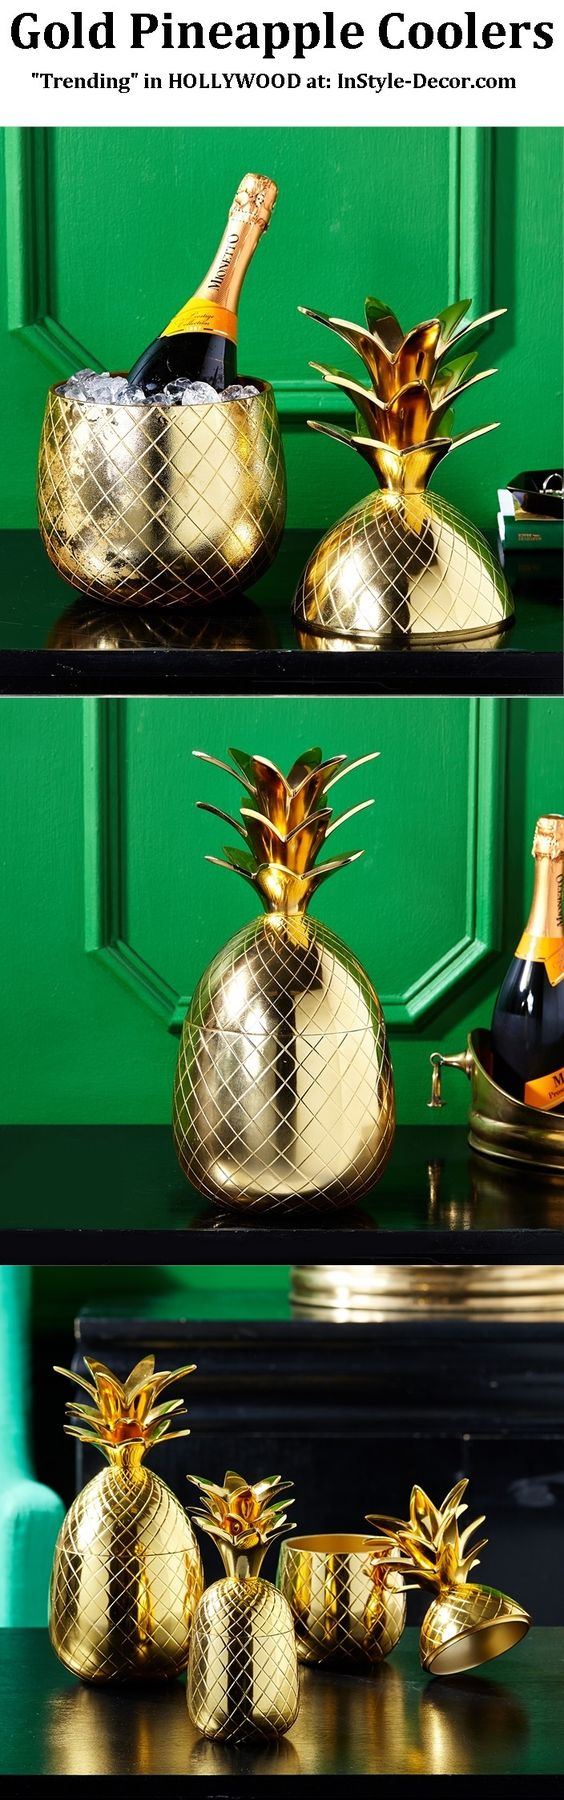 """Gold Pineapple"" ""Gold Pineapples"" ""Gold Pineapple Ice Bucket"" Designs By www.InStyle-Decor... HOLLYWOOD Over 5,000 Inspirations Now Online, Luxury Furniture, Mirrors, Lighting, Chandeliers, Lamps, Decorative Accessories & Gifts. Professional Interior Design Solutions For Interior Architects, Interior Specifiers, Interior Designers, Interior Decorators, Hospitality, Commercial, Maritime & Residential. Beverly Hills New York London Barcelona Over 10 Years Worldwide Shipping Experience"